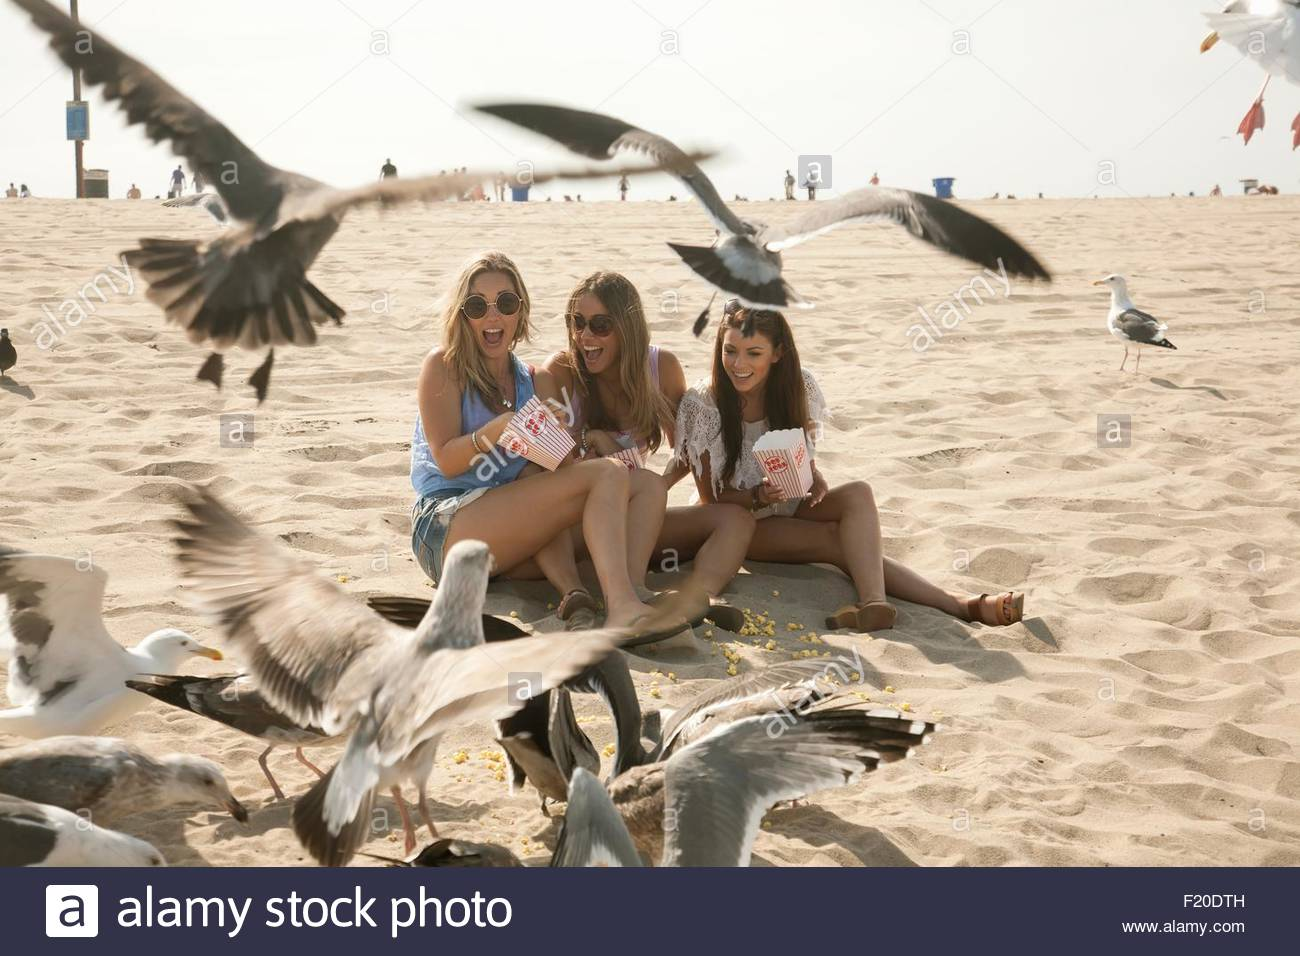 Three young women, sitting on beach, surrounded by seagulls - Stock Image